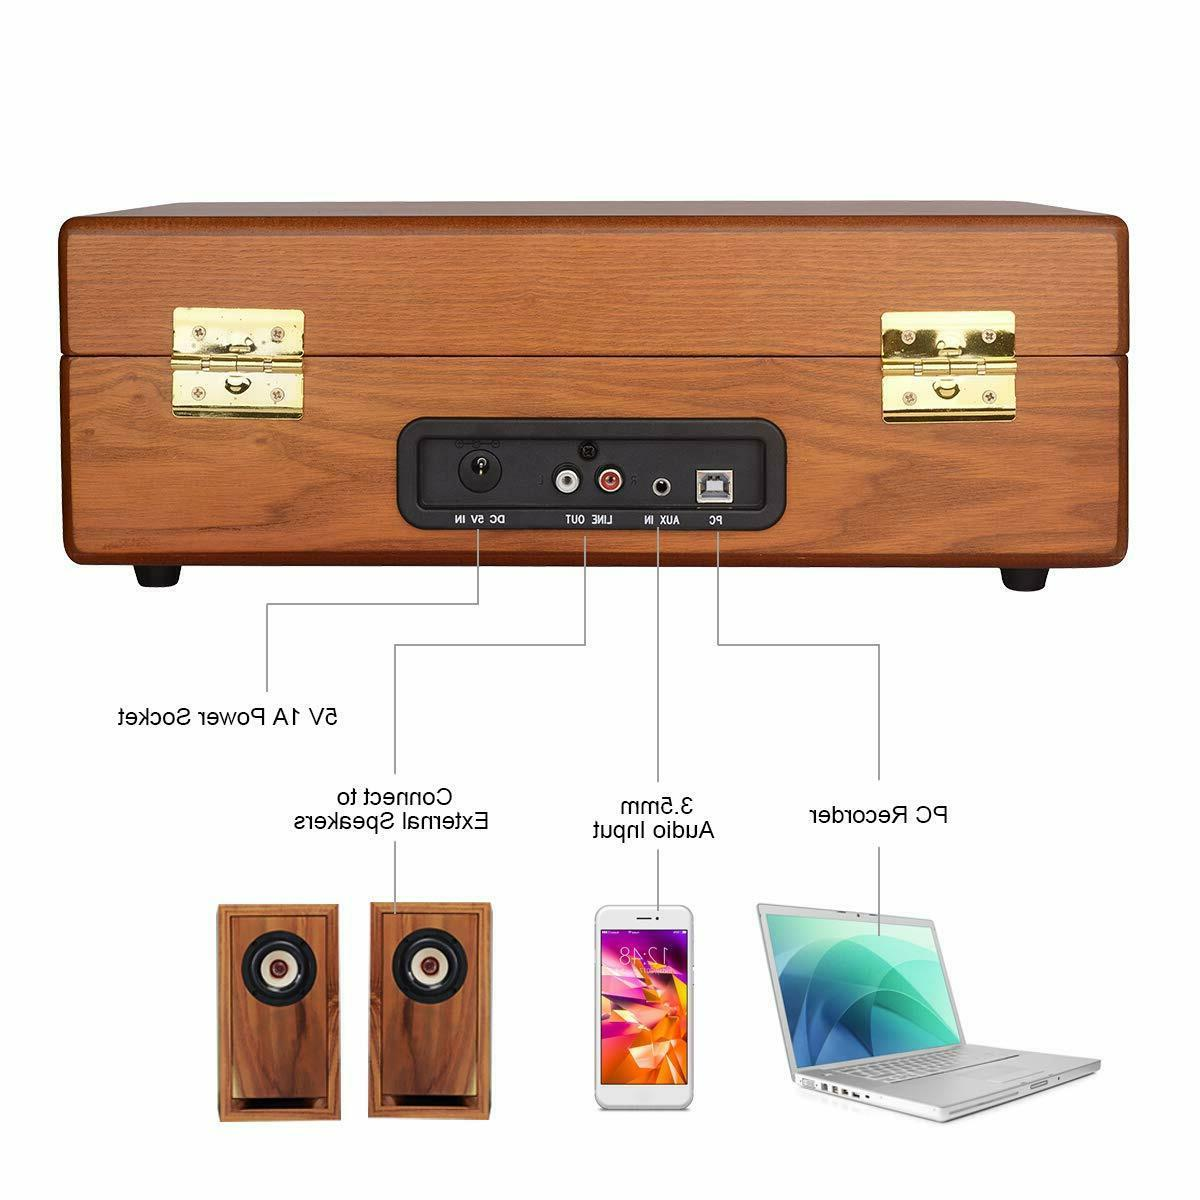 Musitrend Turntable Record Player Built-In Speaker Wood NEW!